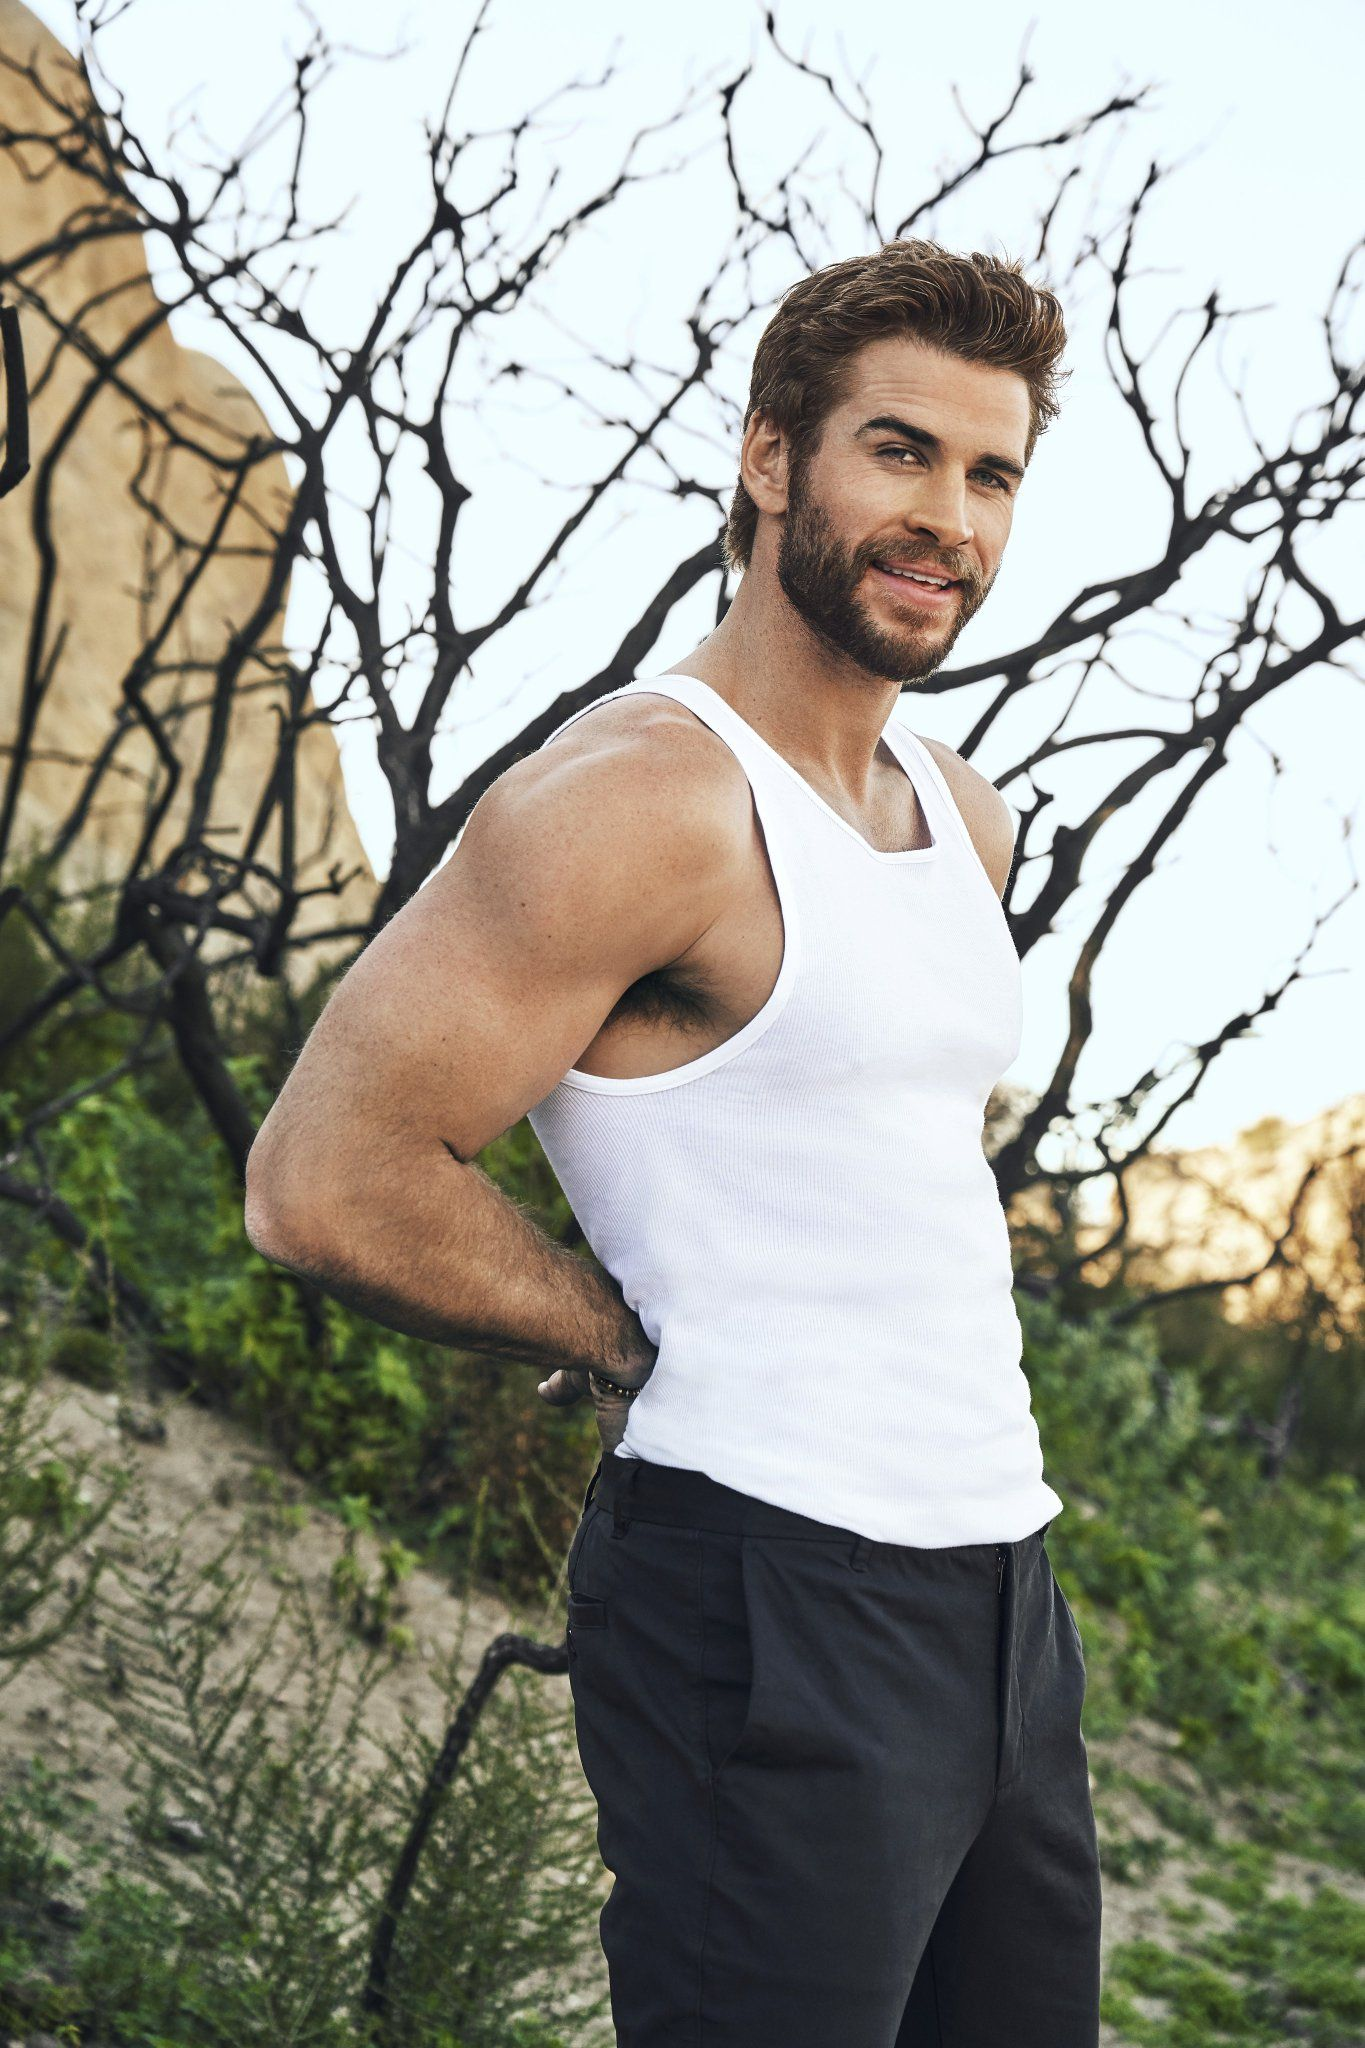 Liam Hemsworth Sexy (5 Photos) - The Male Fappening